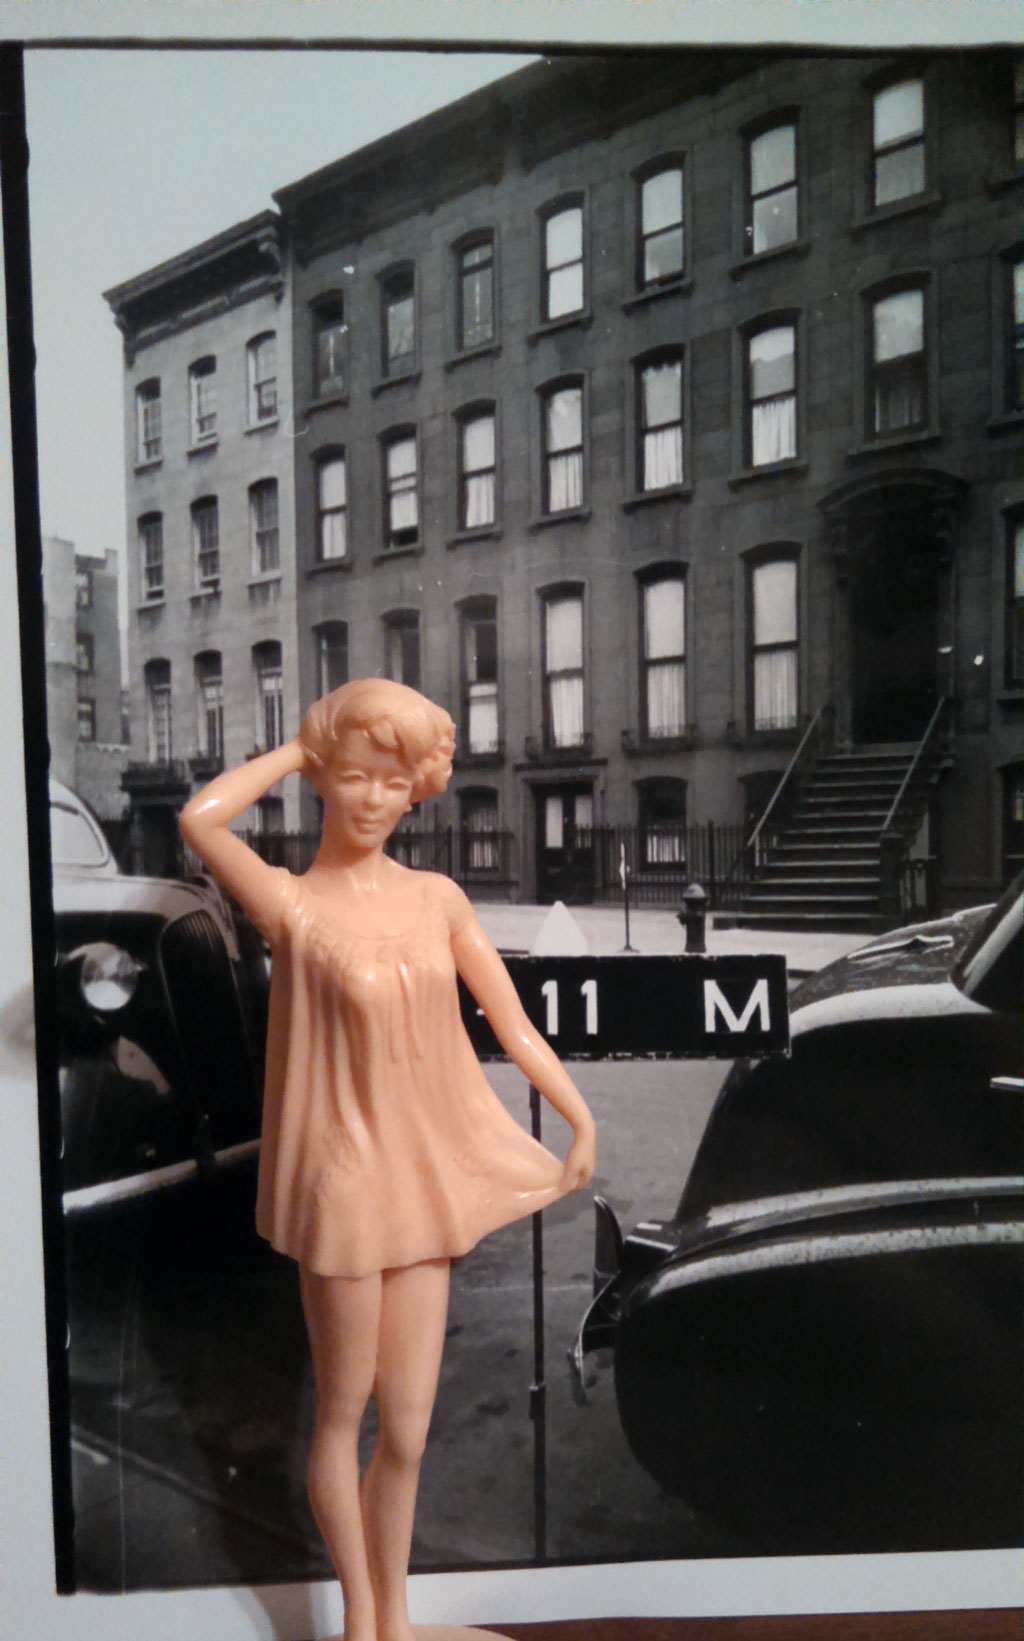 doll in front of black and white photo of residential building